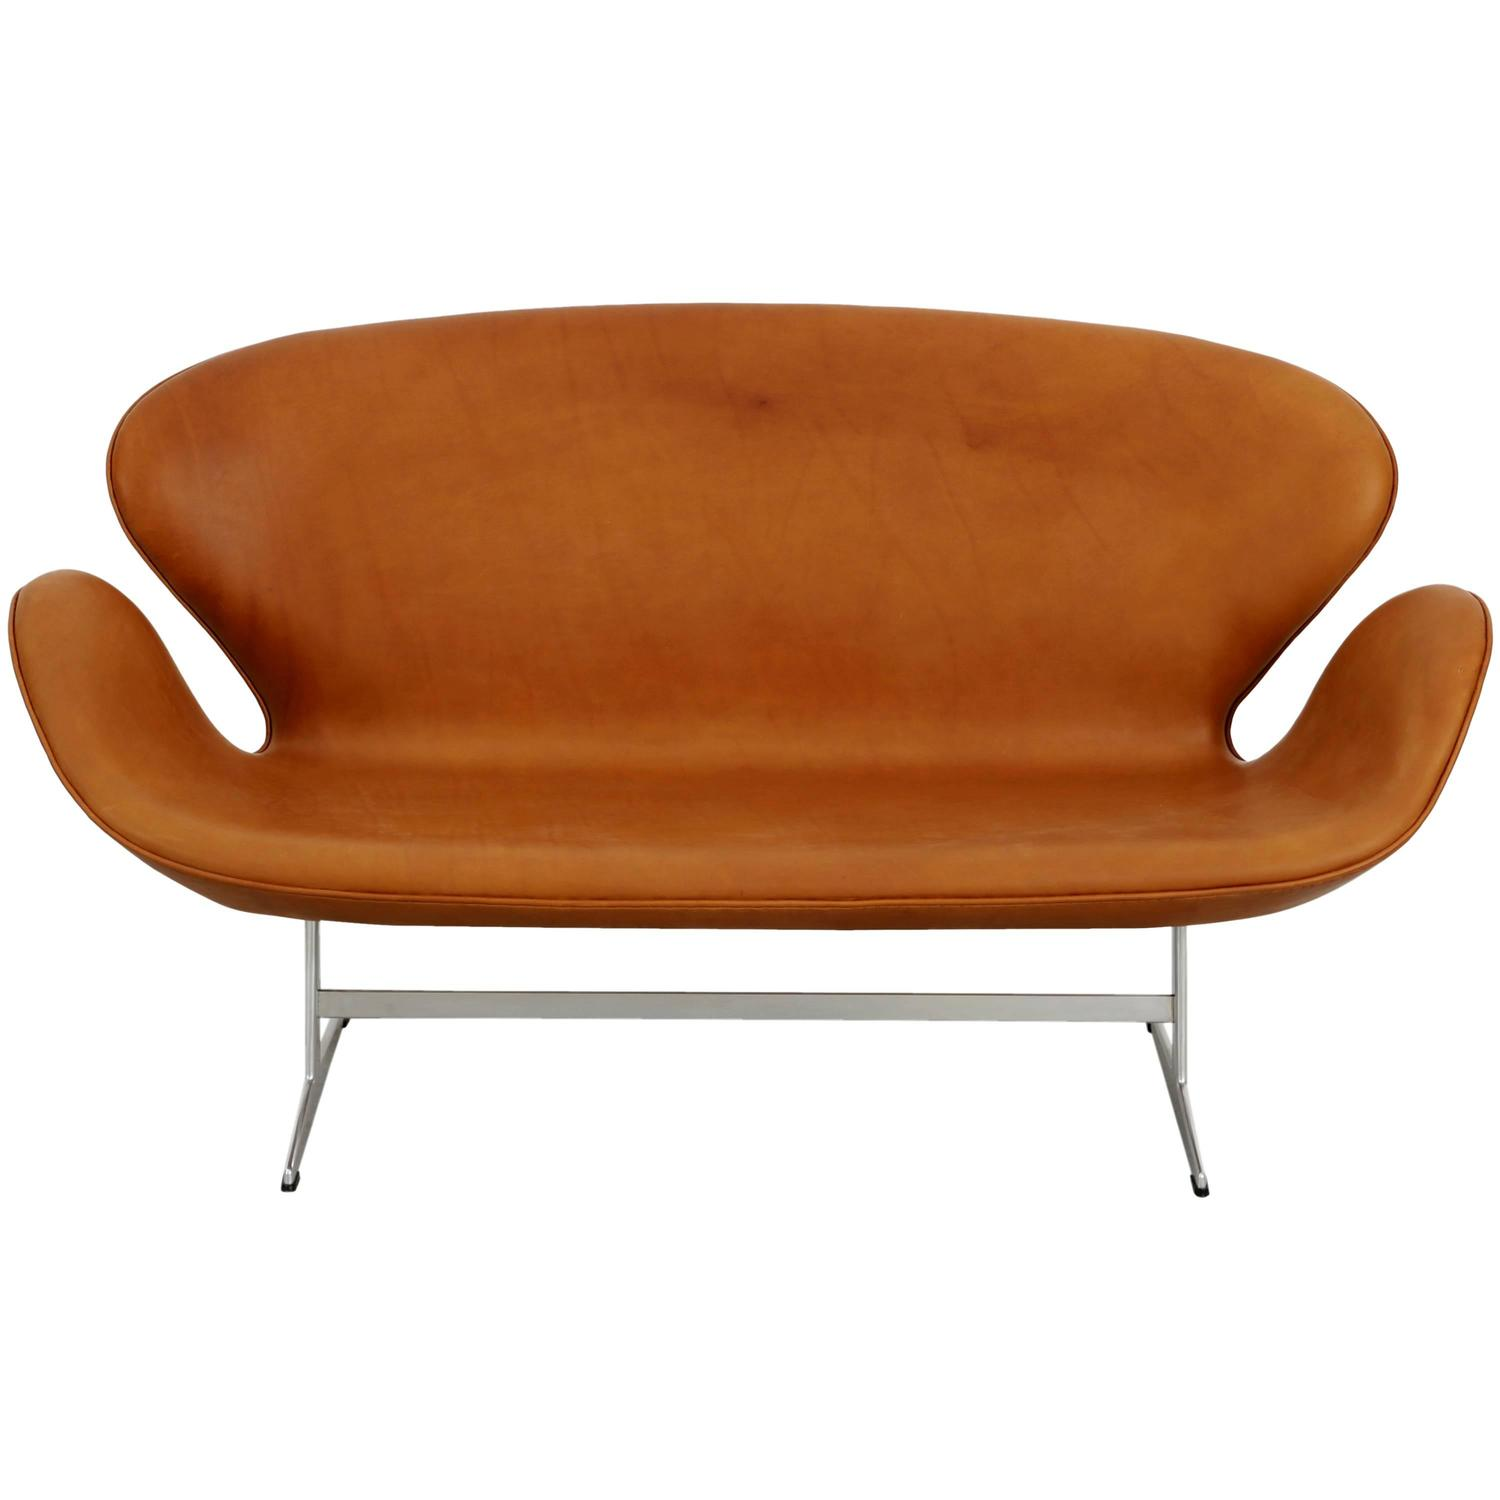 arne jacobsen swan sofa reupholstered in cognac leather at 1stdibs. Black Bedroom Furniture Sets. Home Design Ideas